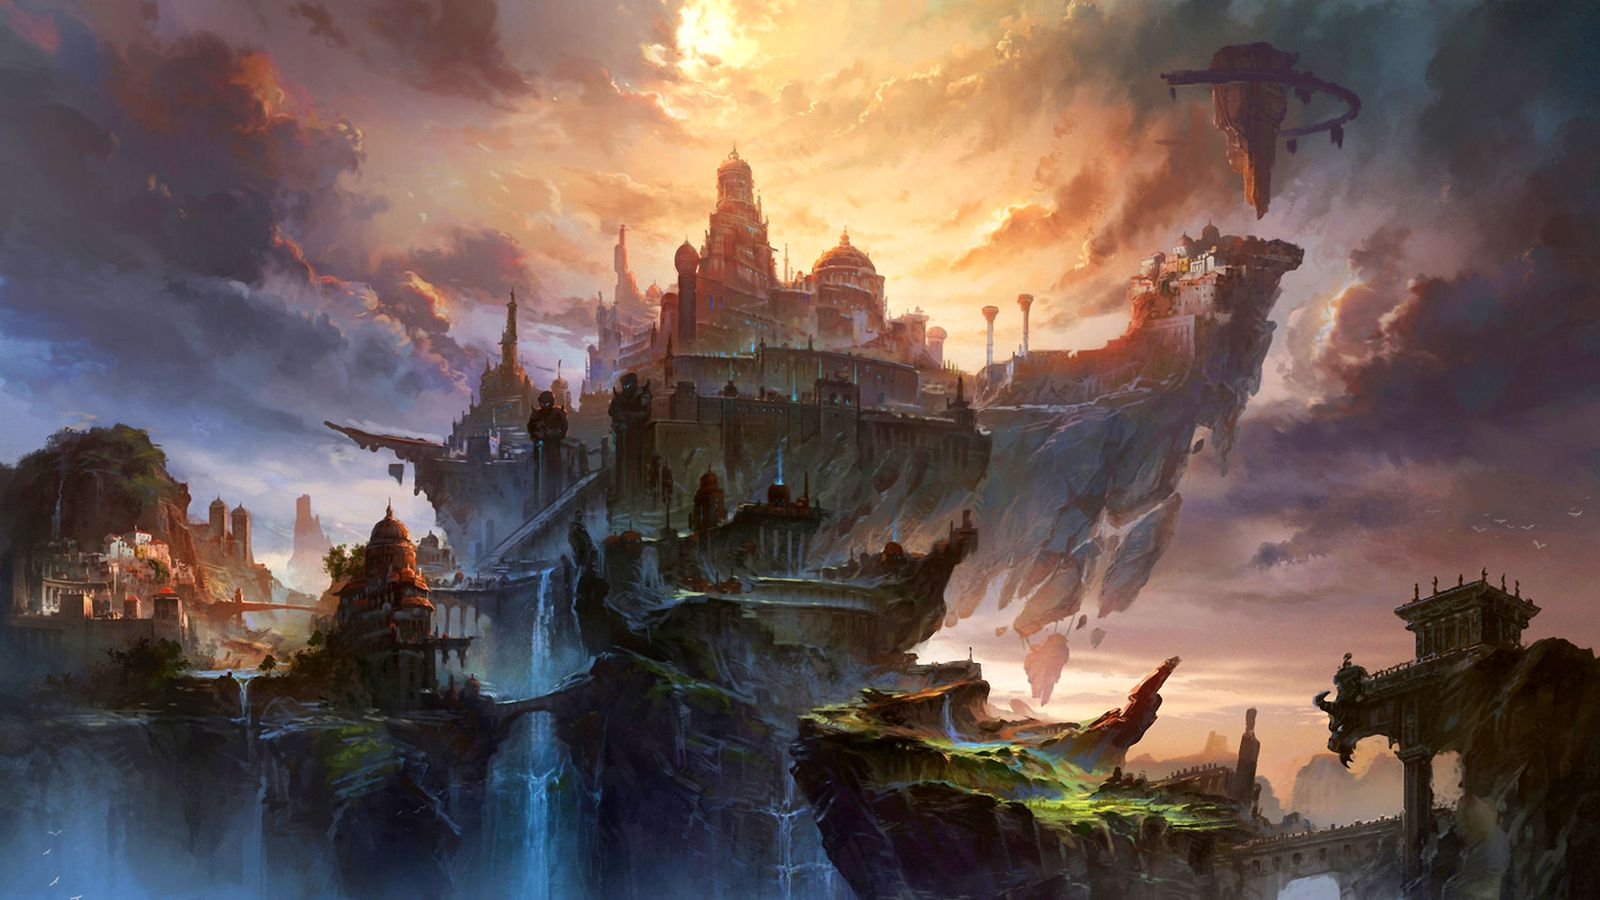 The City In The Clouds Computer Wallpapers Desktop Backgrounds 1600x900 Id 322072 Environment Concept Art Fantasy Landscape Fantasy Art